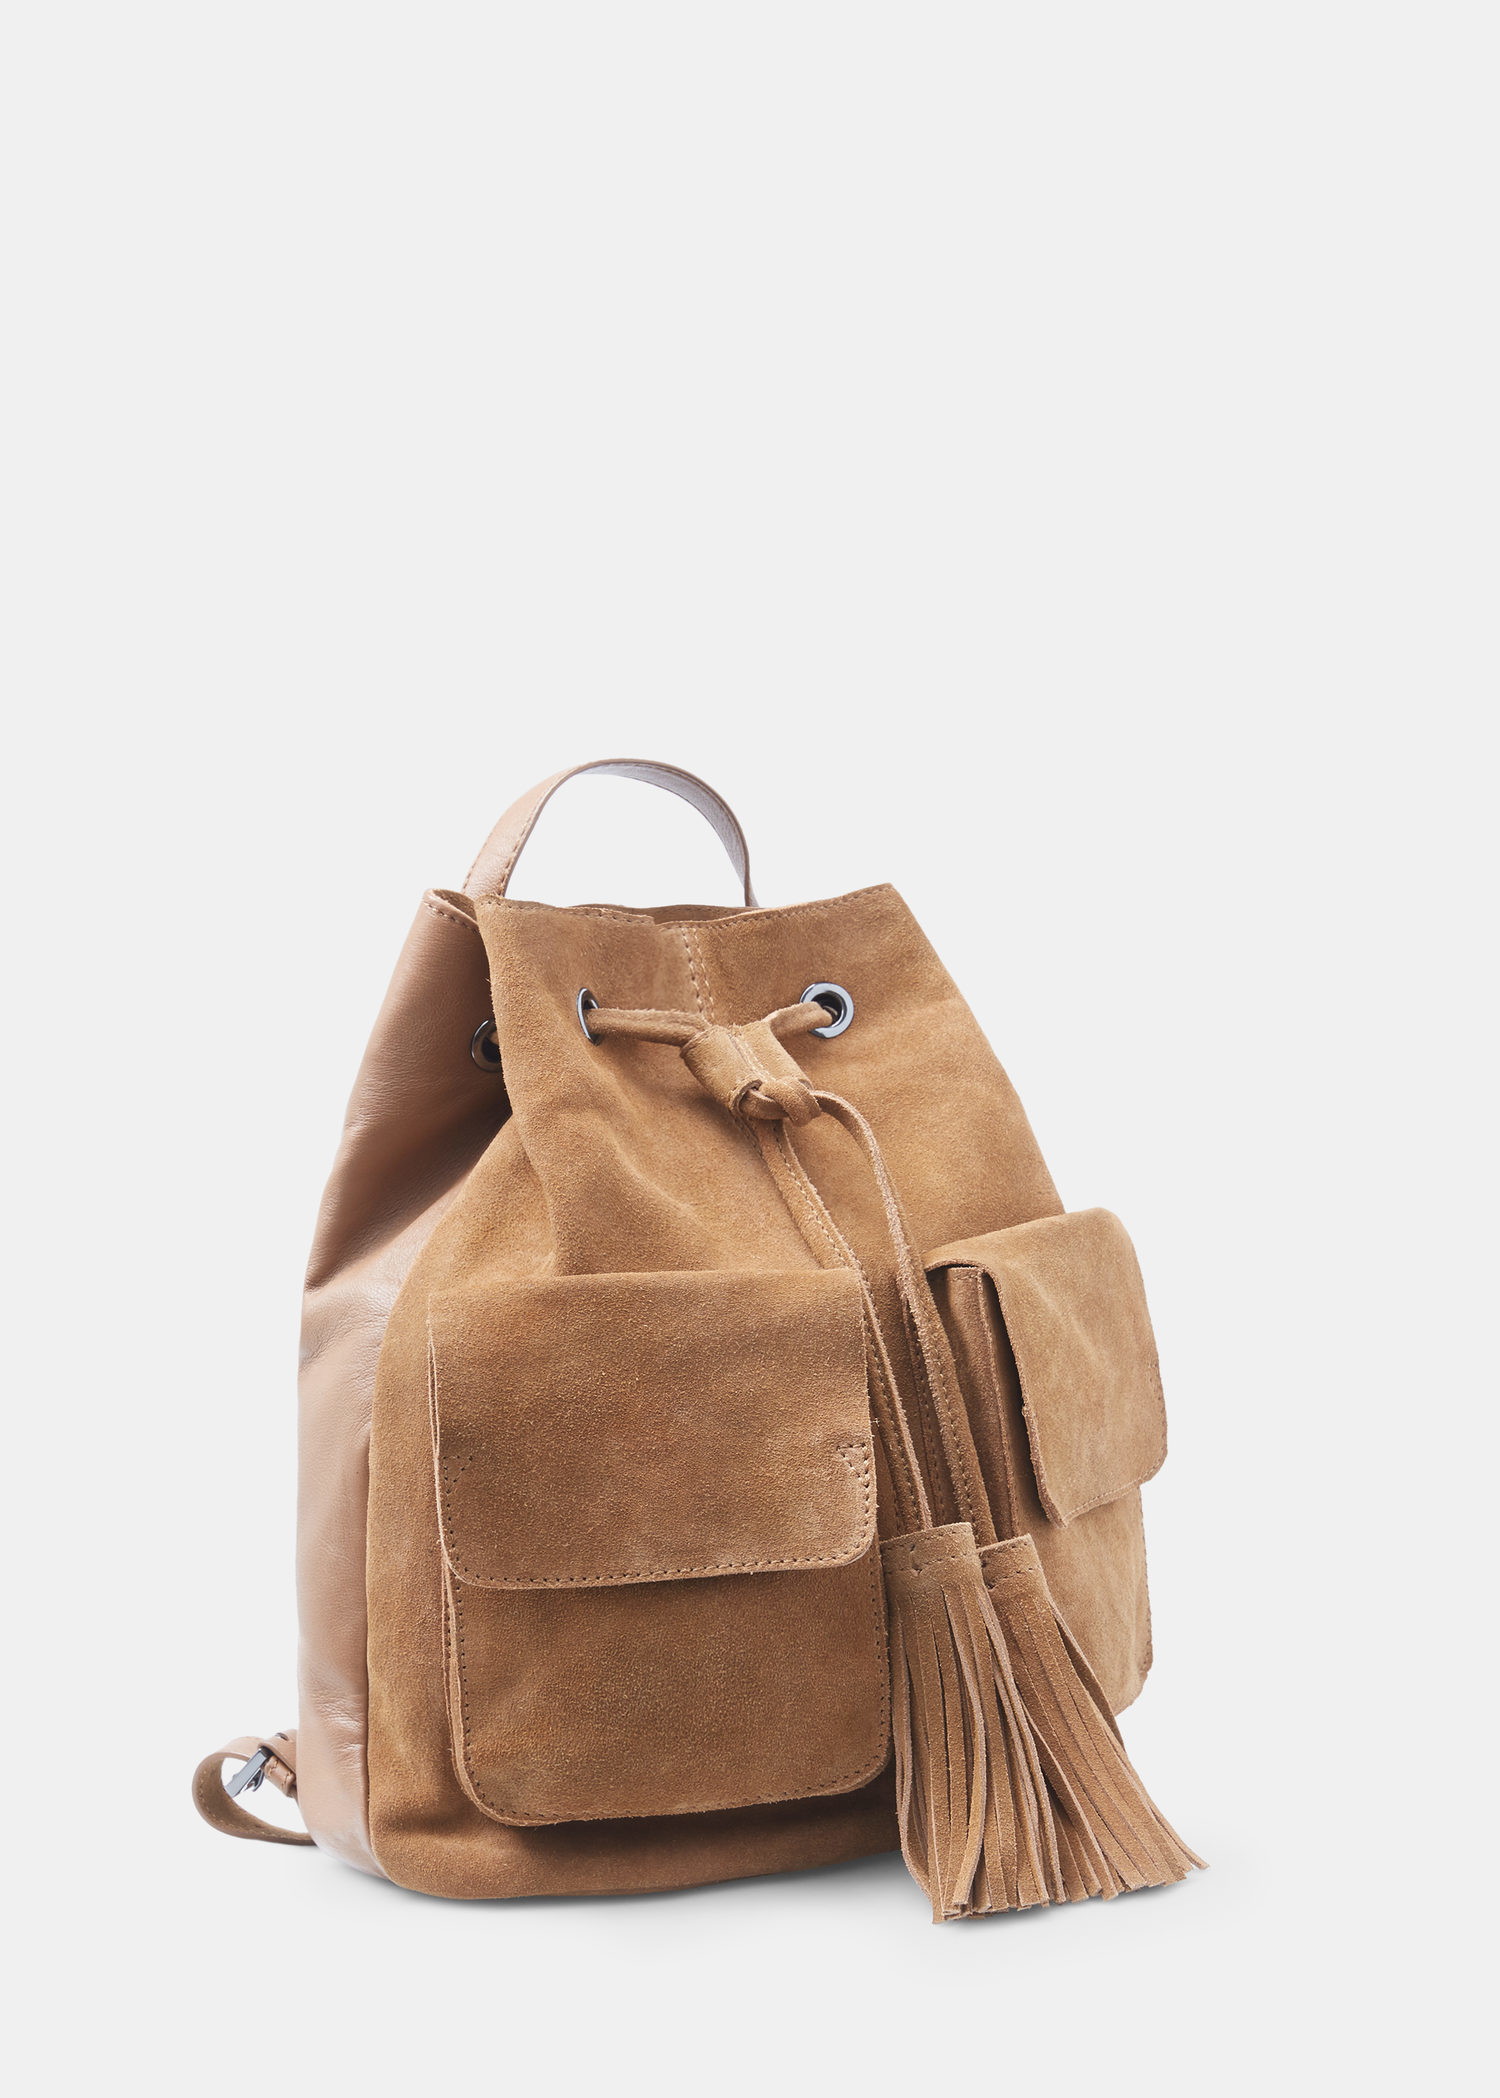 Mango Pocket Leather Backpack in Brown | Lyst